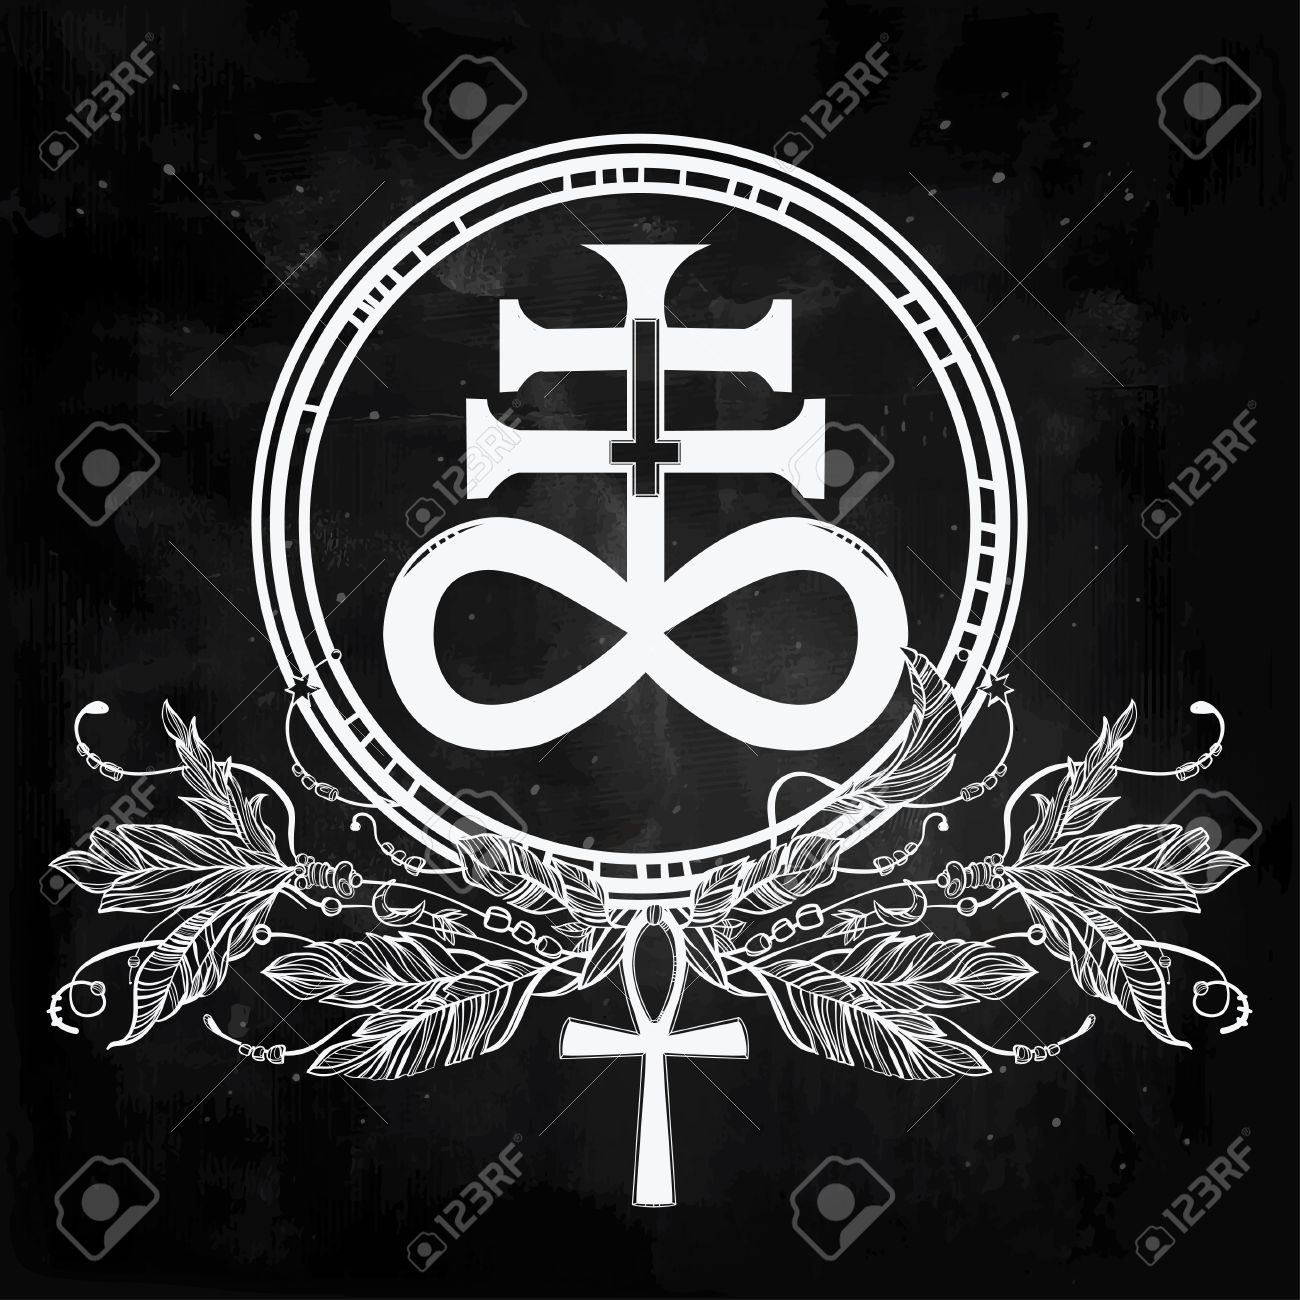 Hand drawn vintage tattoo art vector illustration the satanic vector illustration the satanic cross also known as buycottarizona